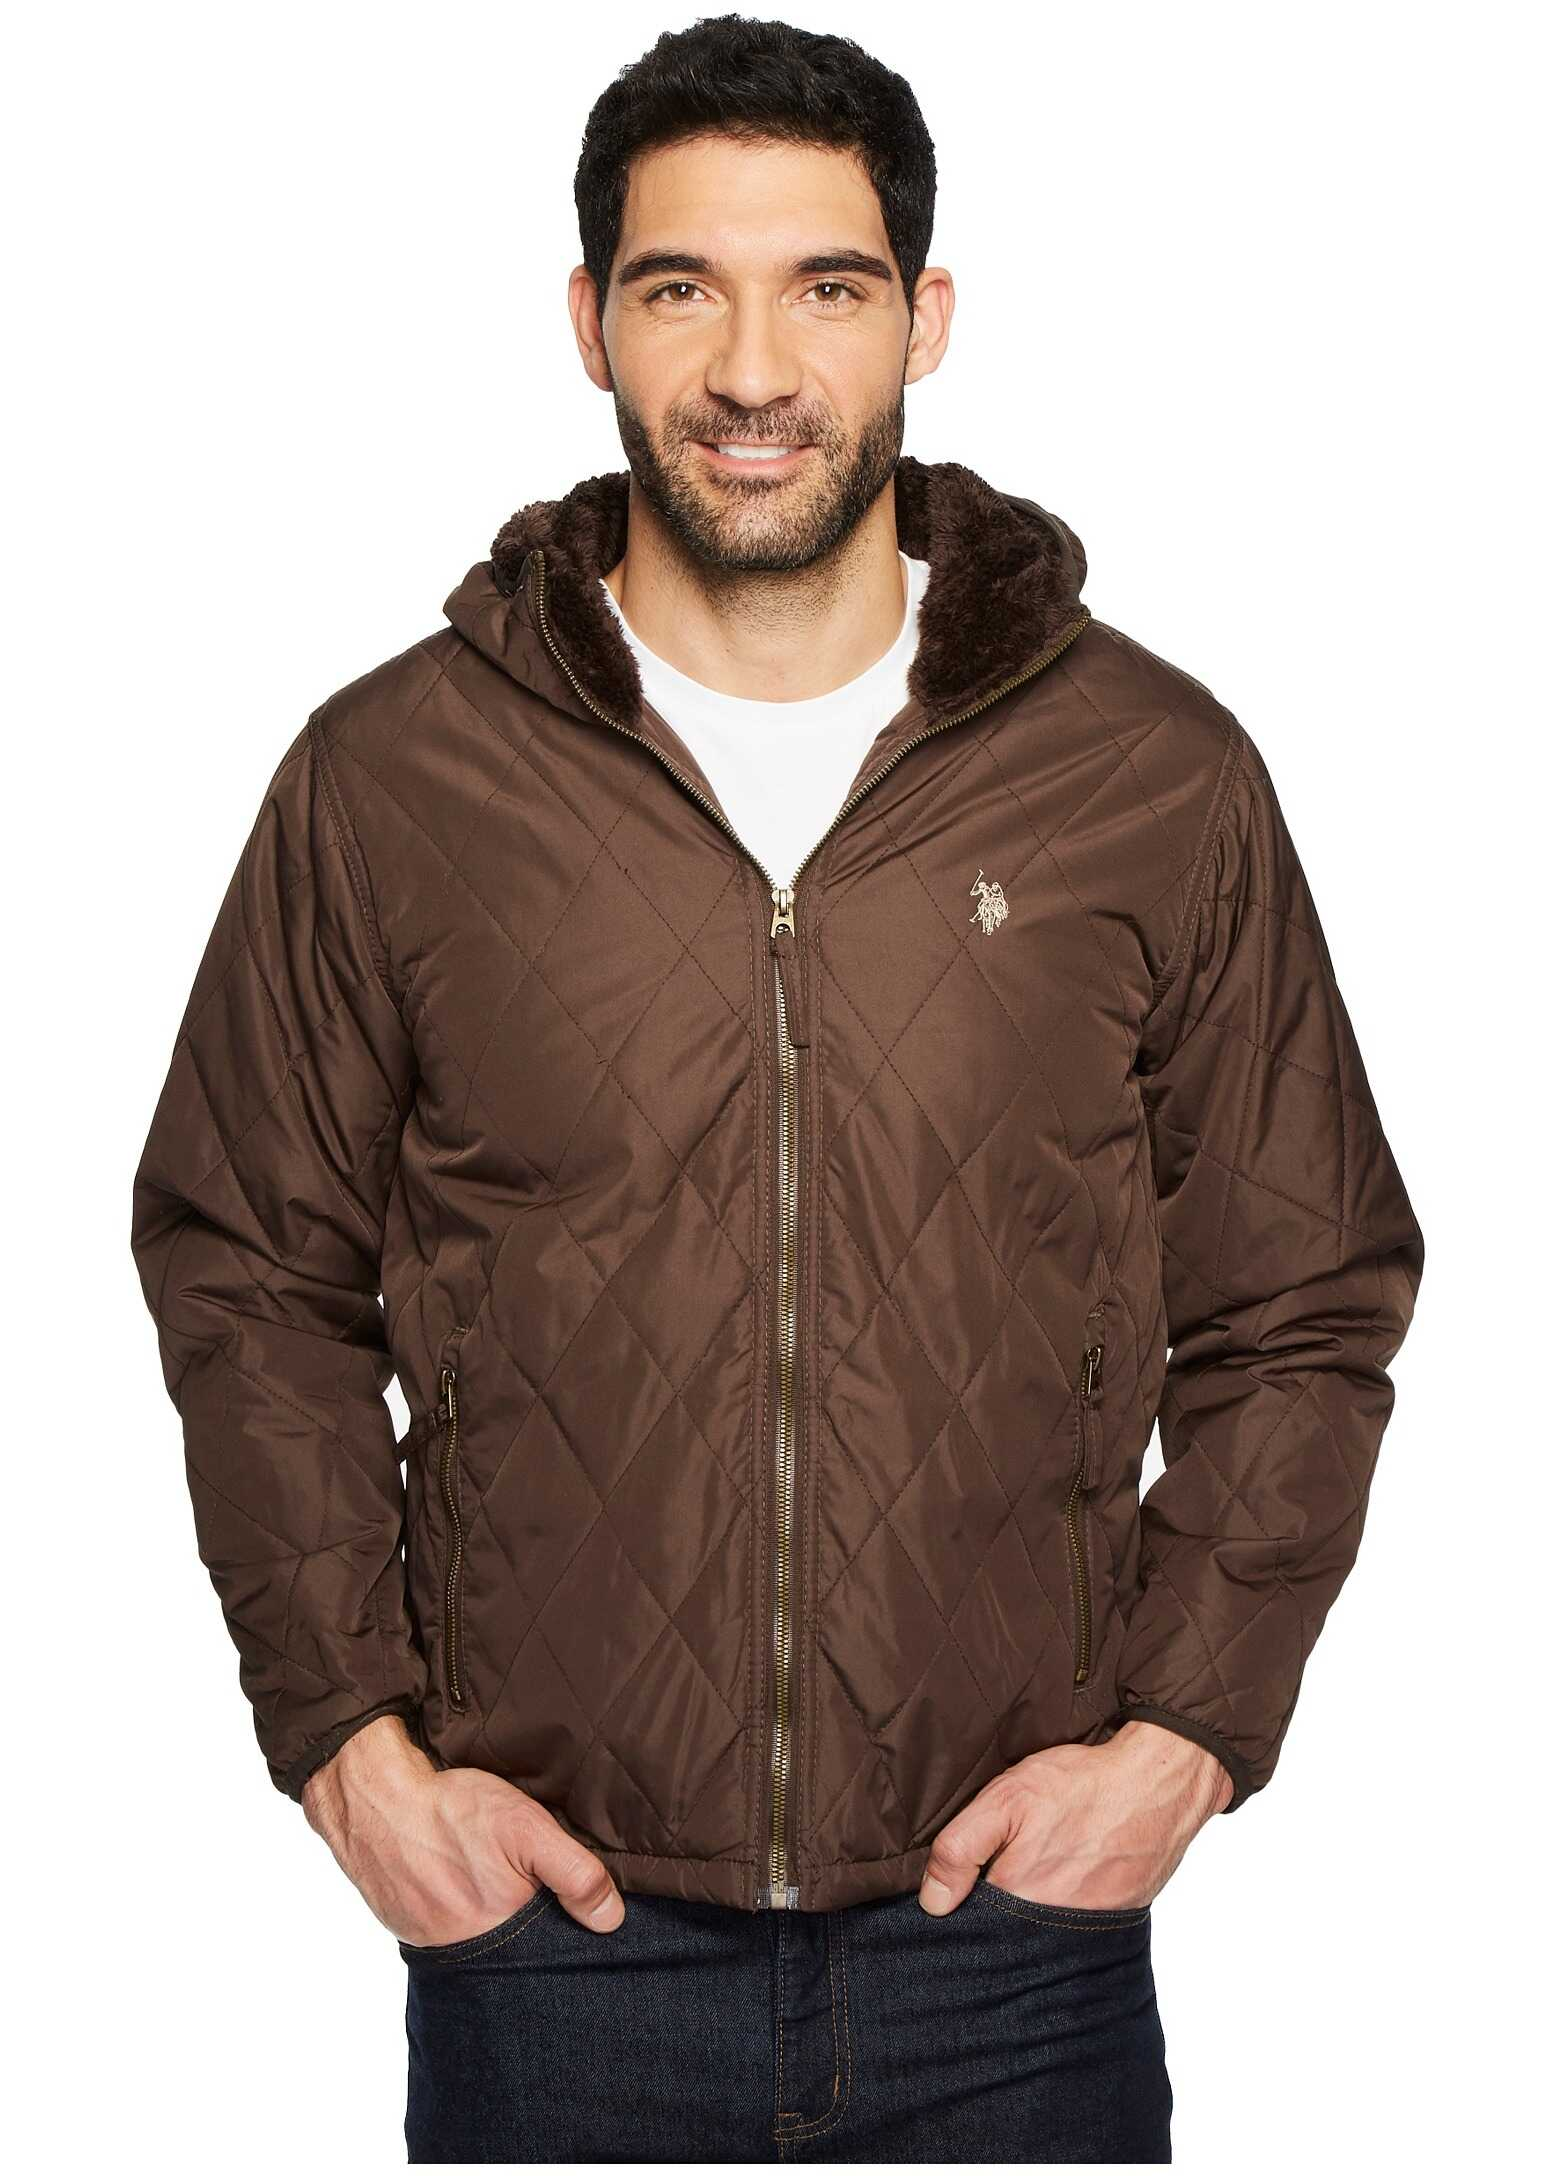 U.S. POLO ASSN. Diamond Quilted Hooded Jacket Dark Brown